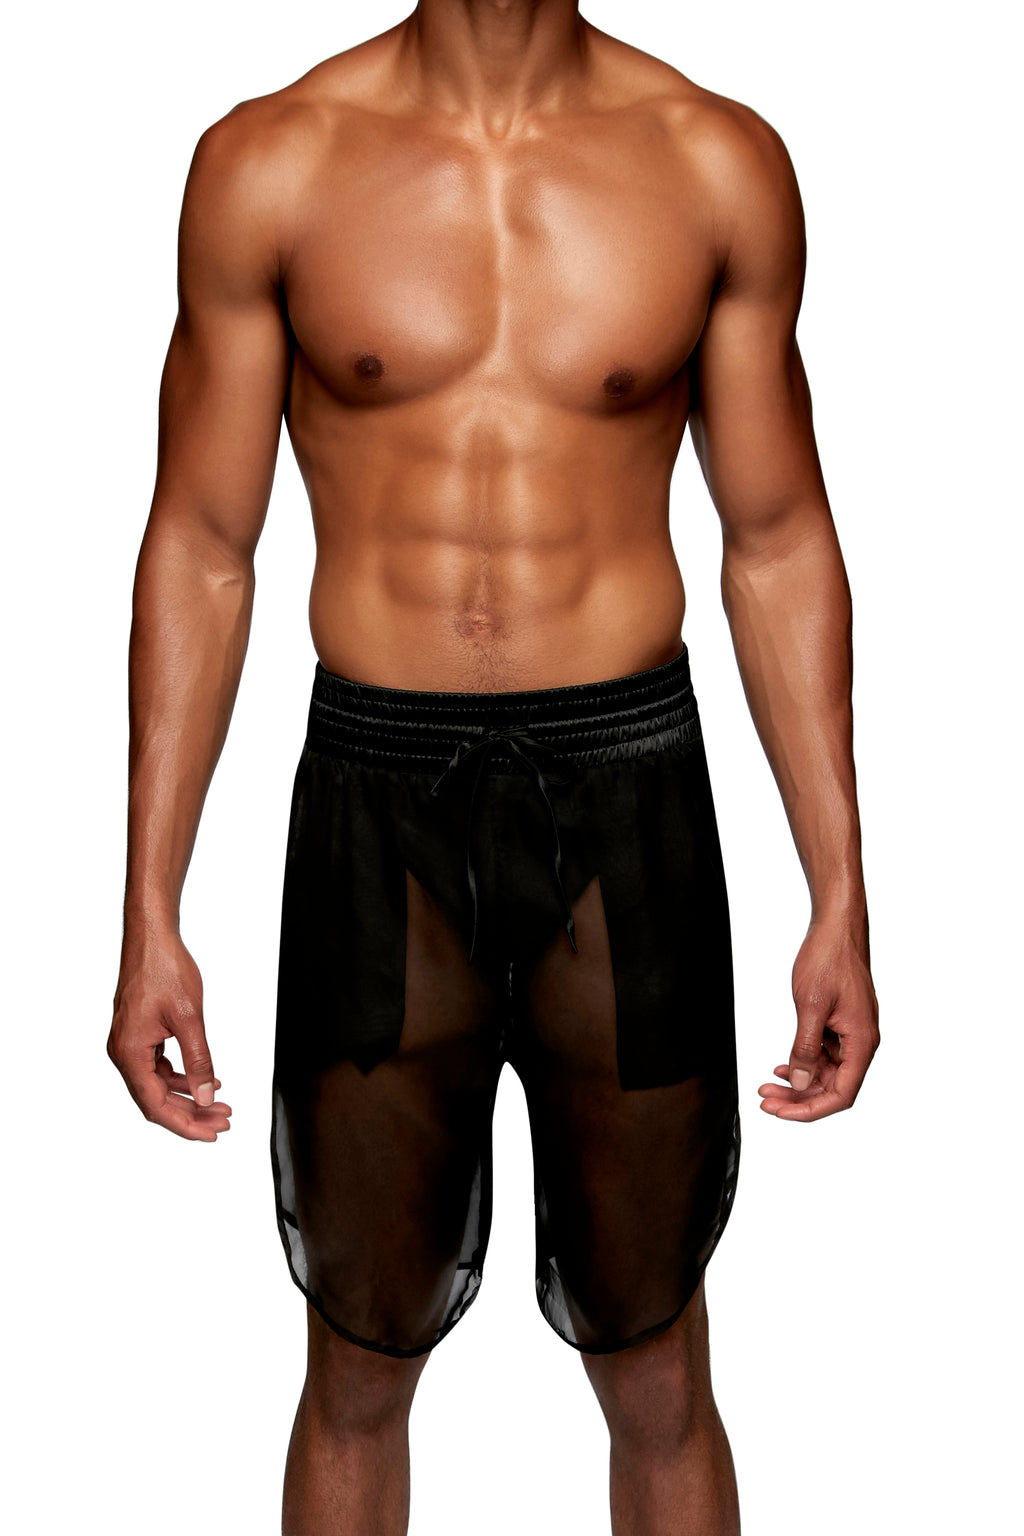 SPORTS SHORT in CHIFFON - MENAGERIE Intimates MENS Lingerie